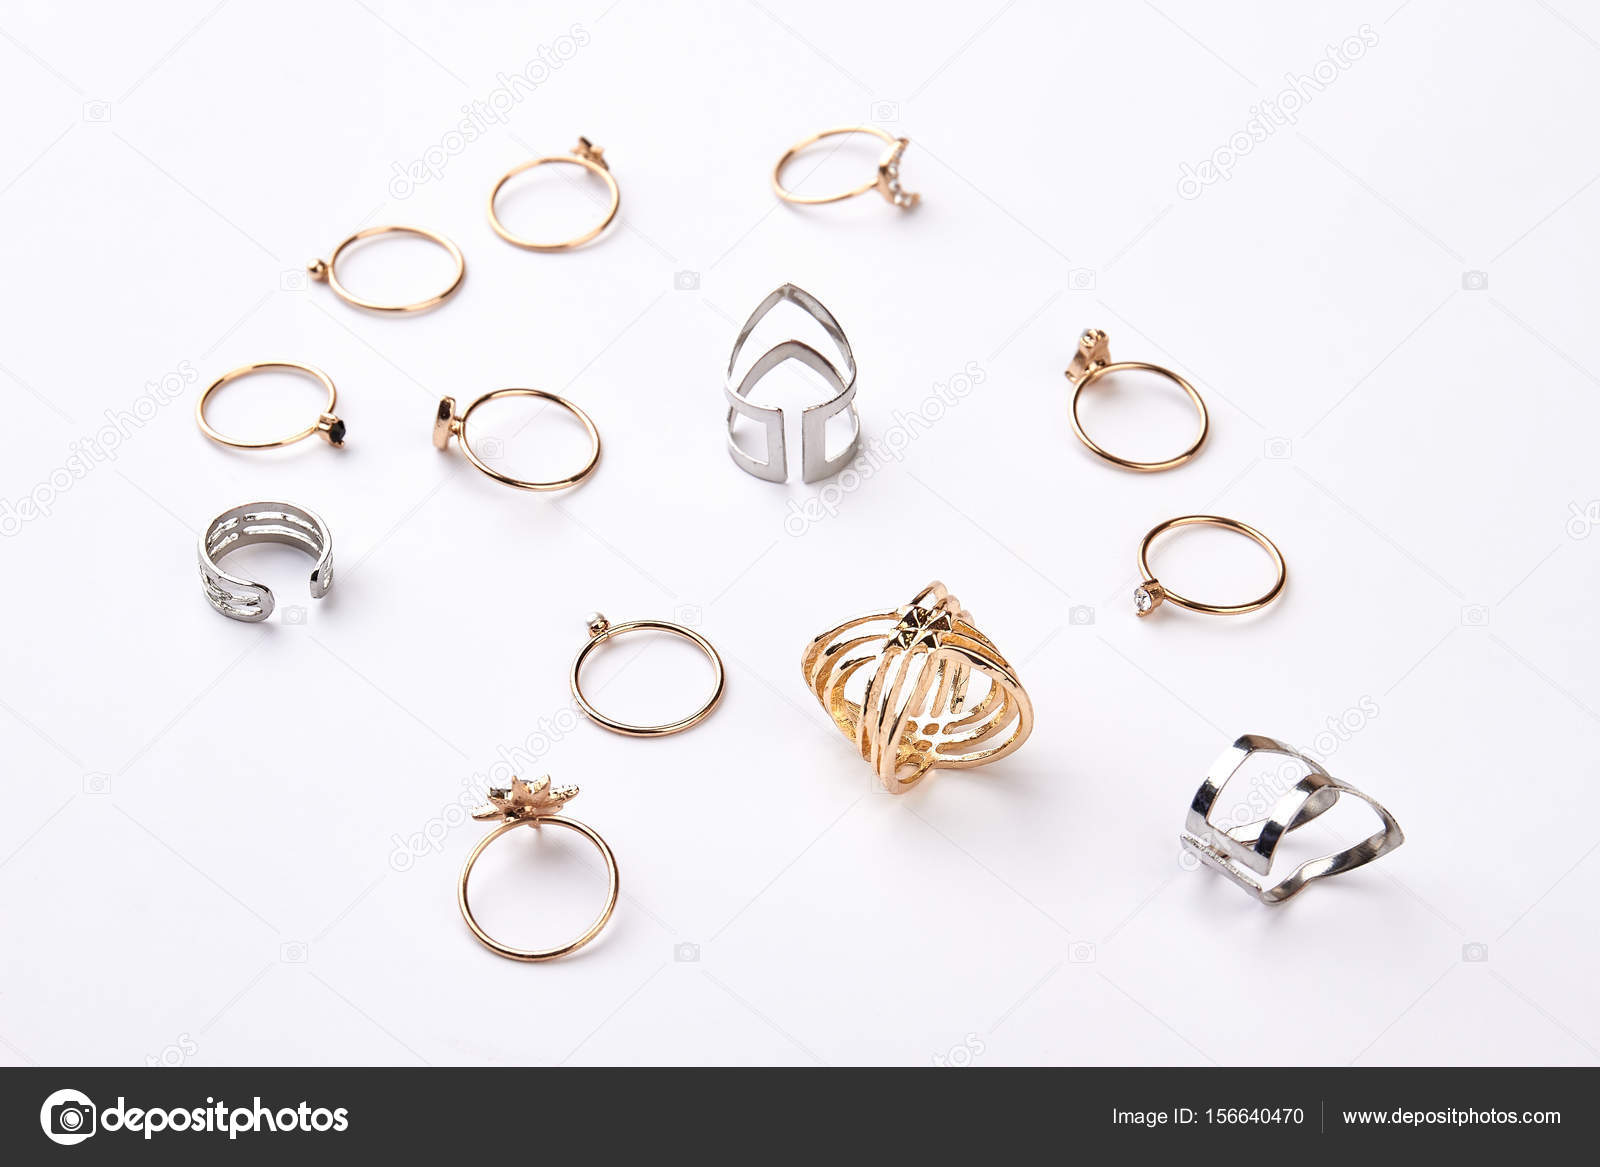 wedding weddings rings elegant designs different